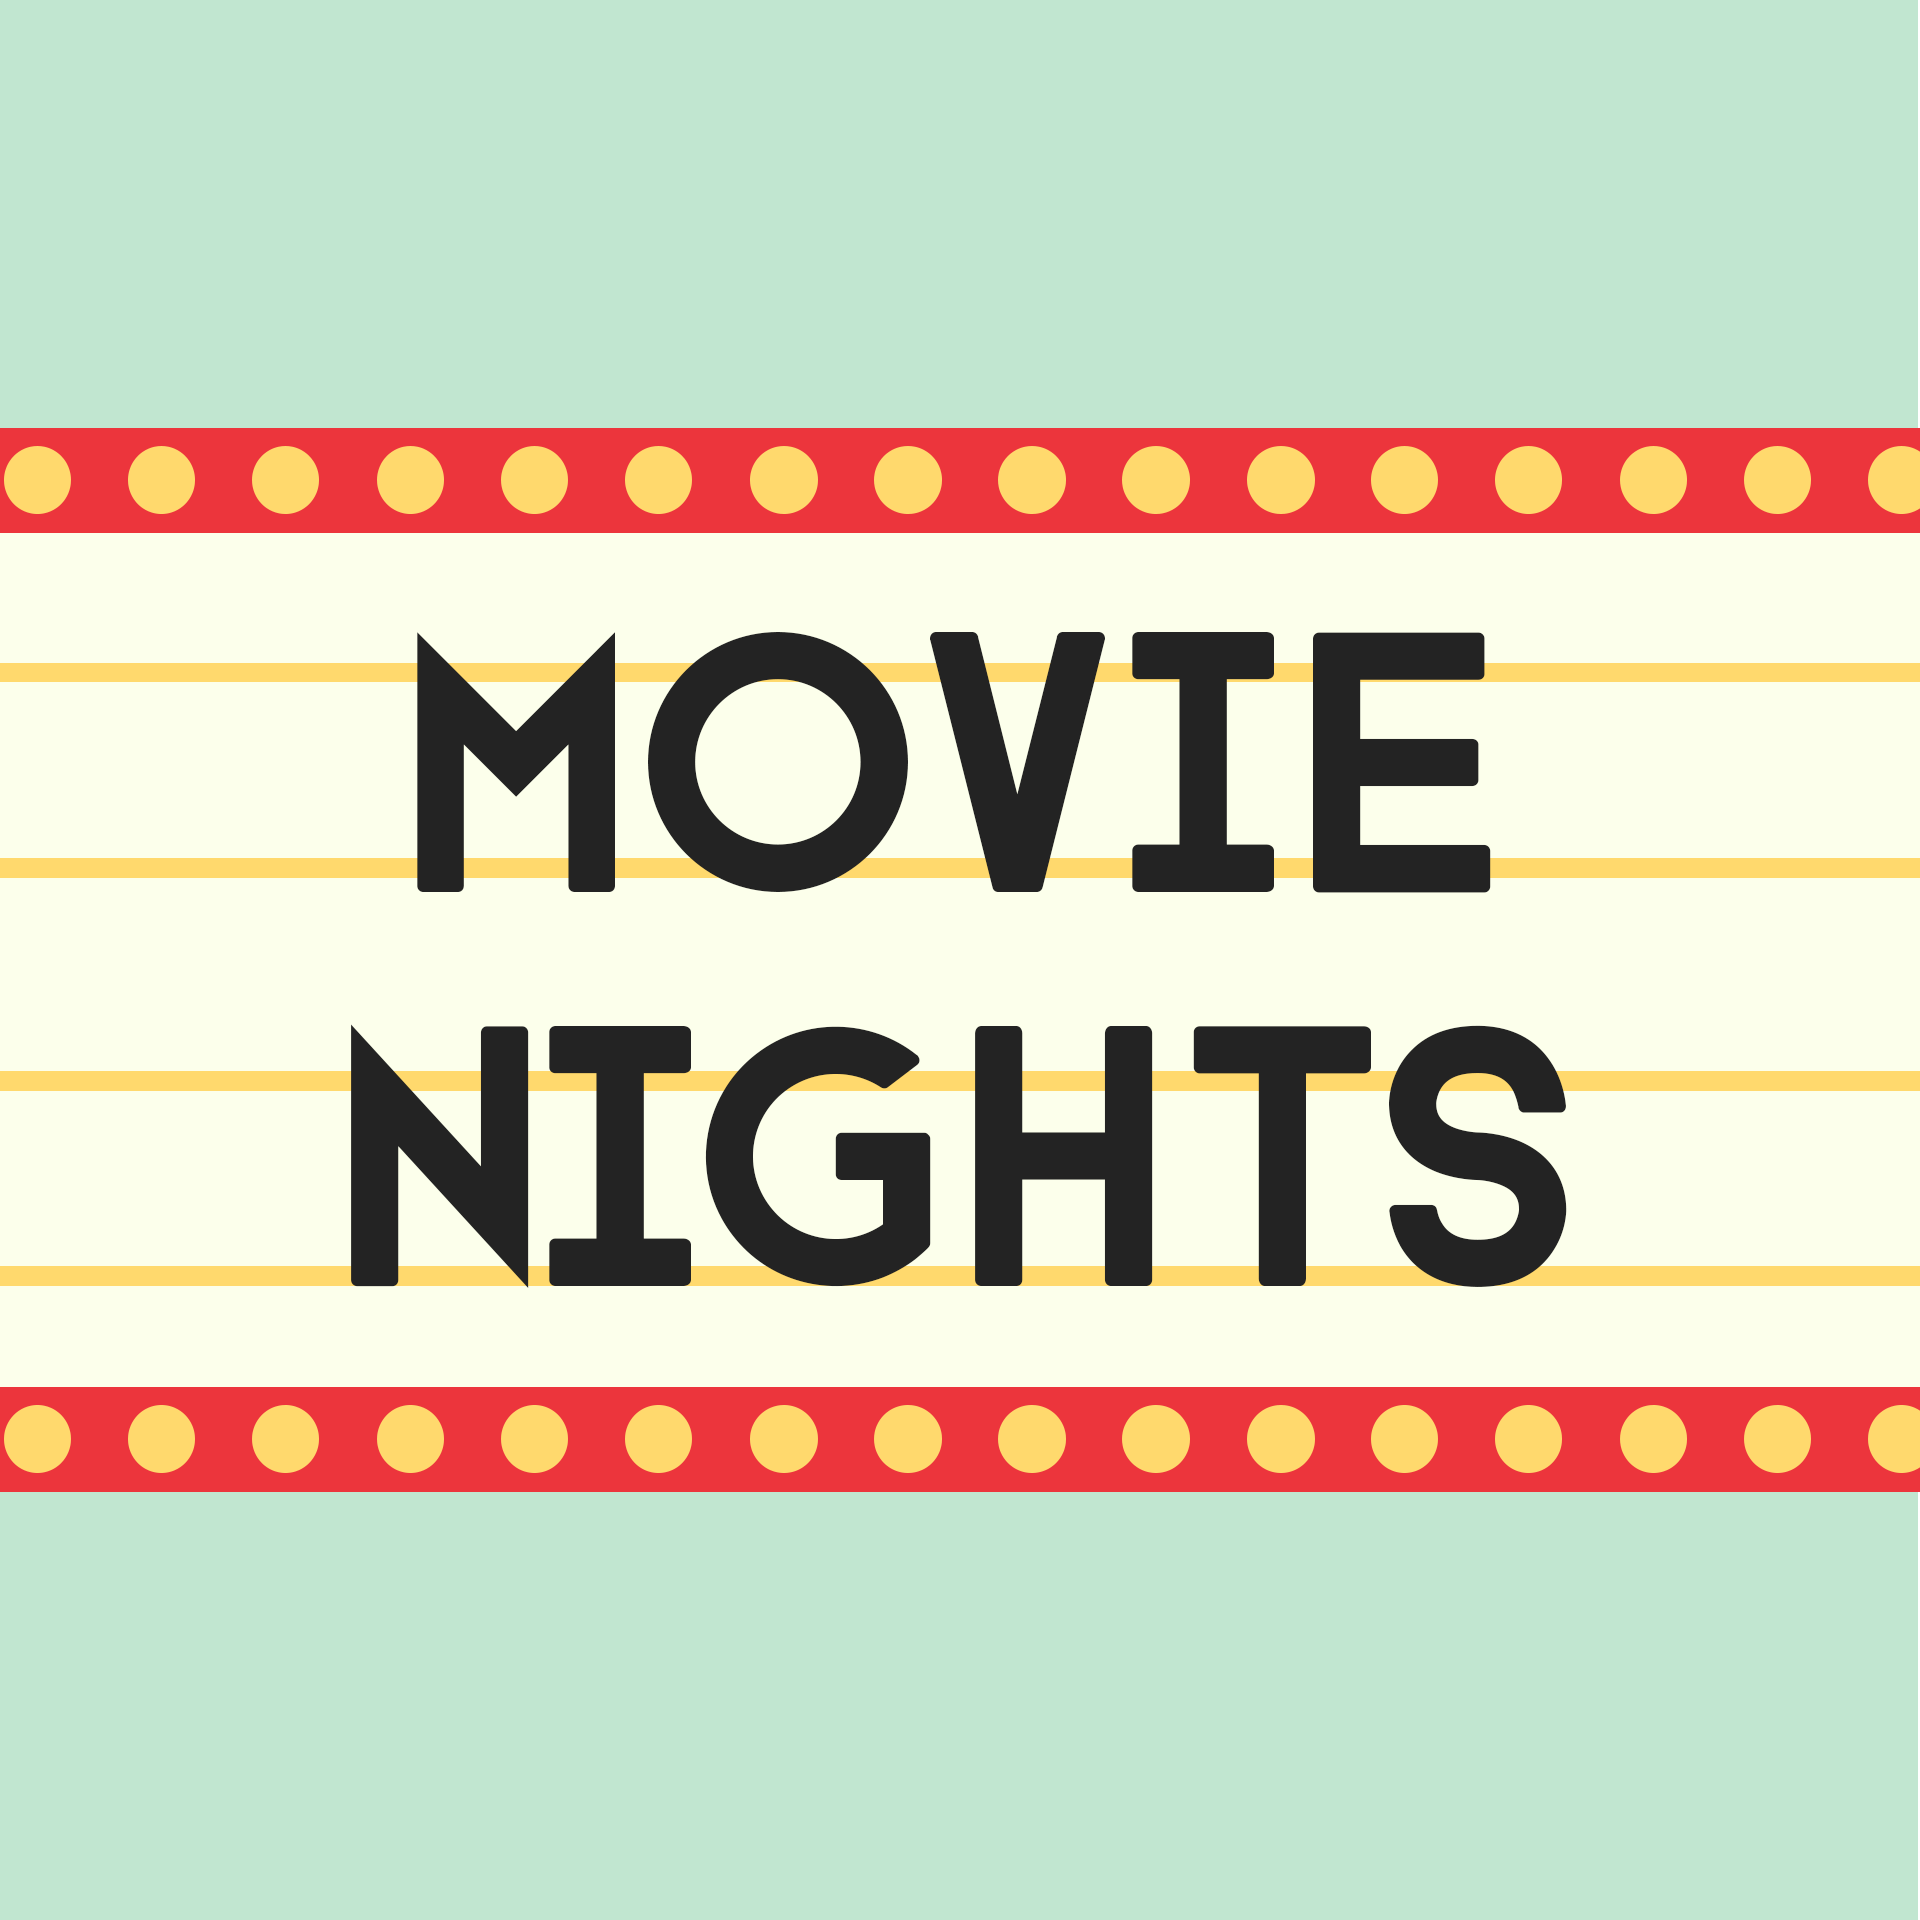 movie nights square.png